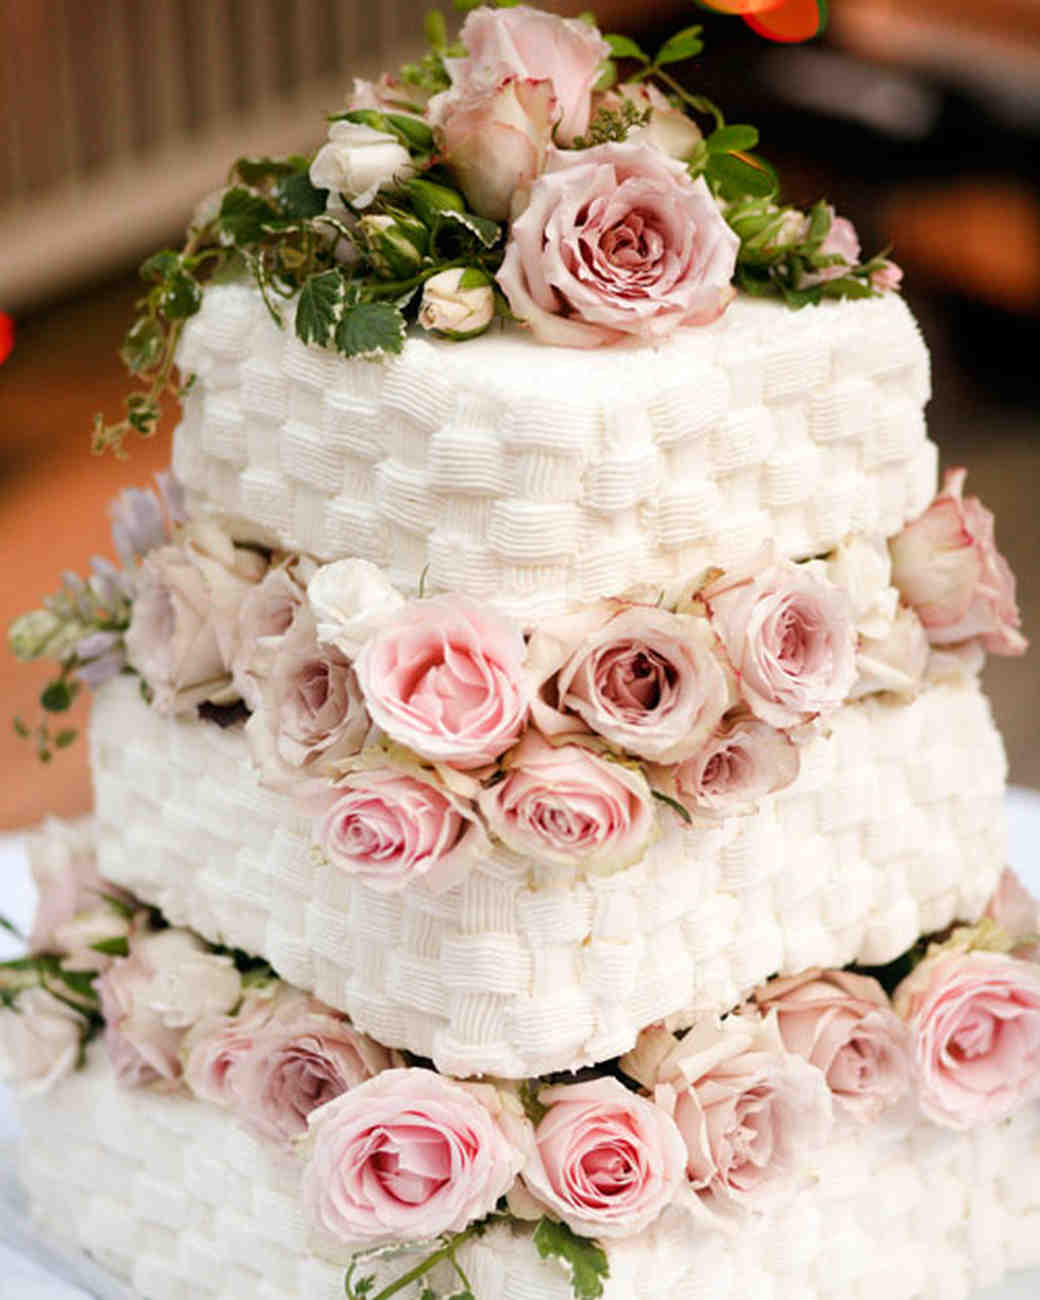 Awesome White Wedding Cake Recipe Huge Country Wedding Cake Ideas Solid Wedding Cake Pool Steps Wedding Dress Cupcake Cake Young Owl Wedding Cake Toppers RedCakes For Weddings 20 Beautiful Buttercream Wedding Cake Ideas \u2014 The Bohemian Wedding